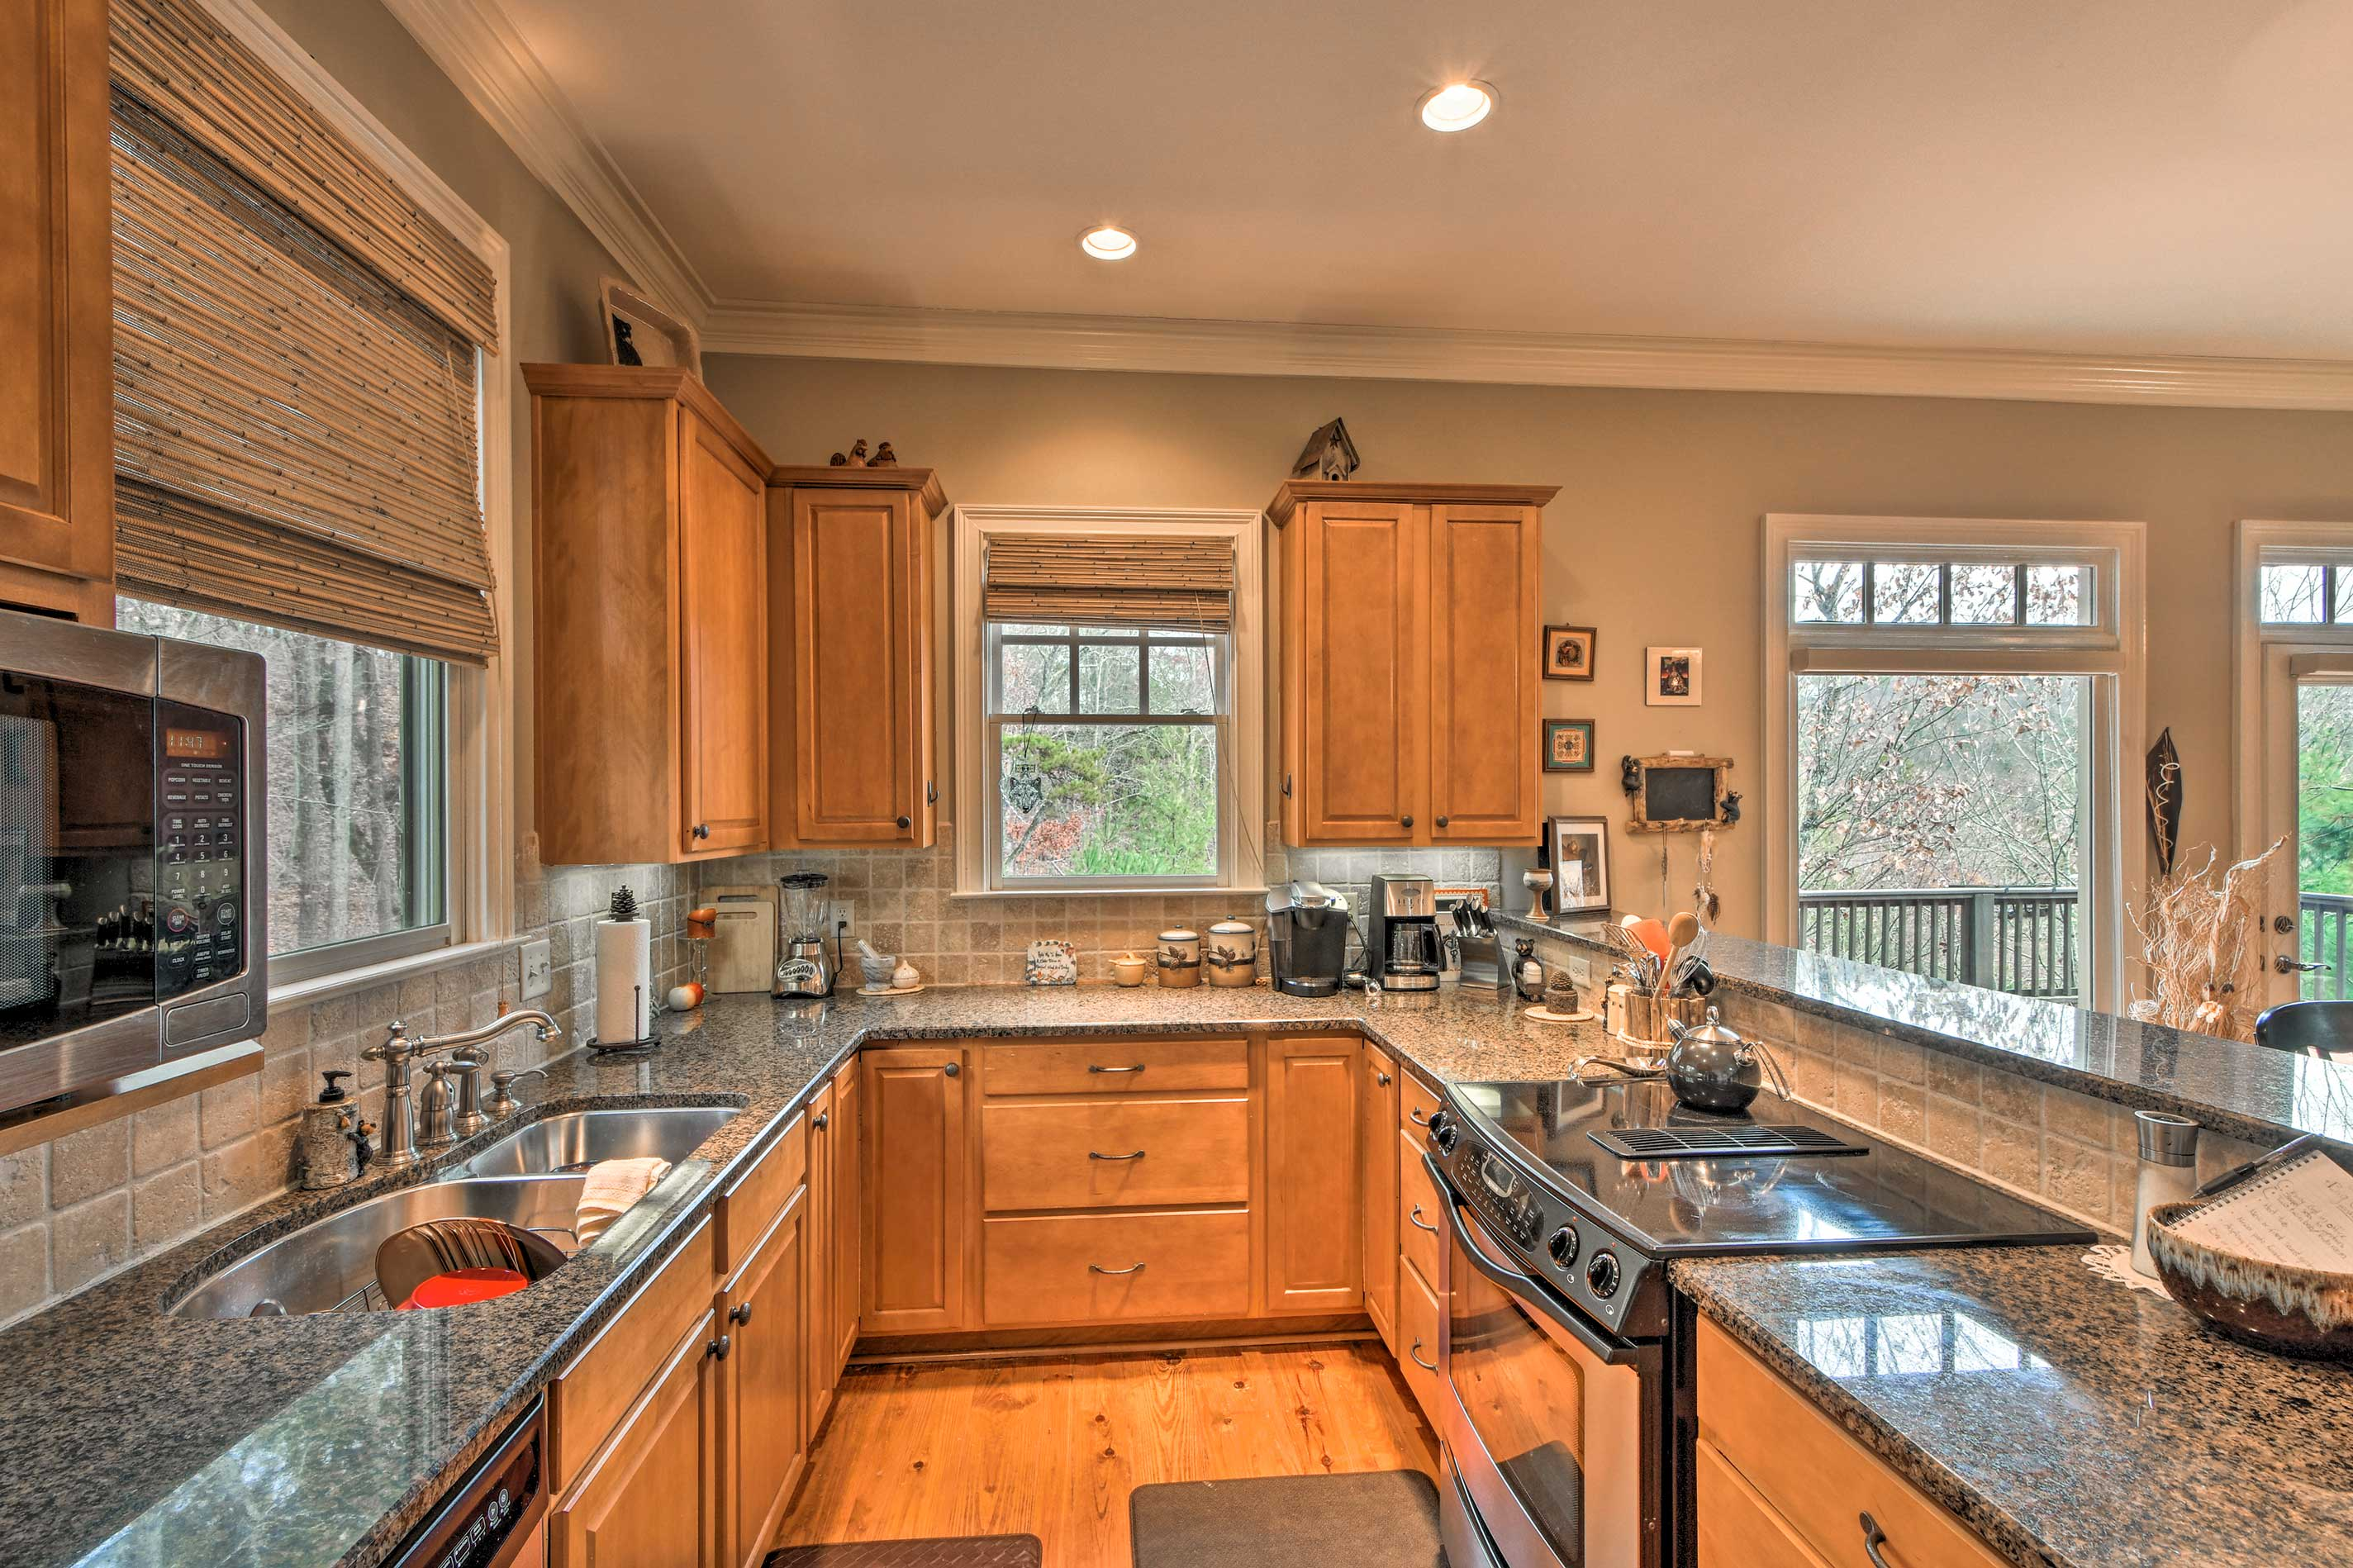 This kitchen features all of the bells and whistles!